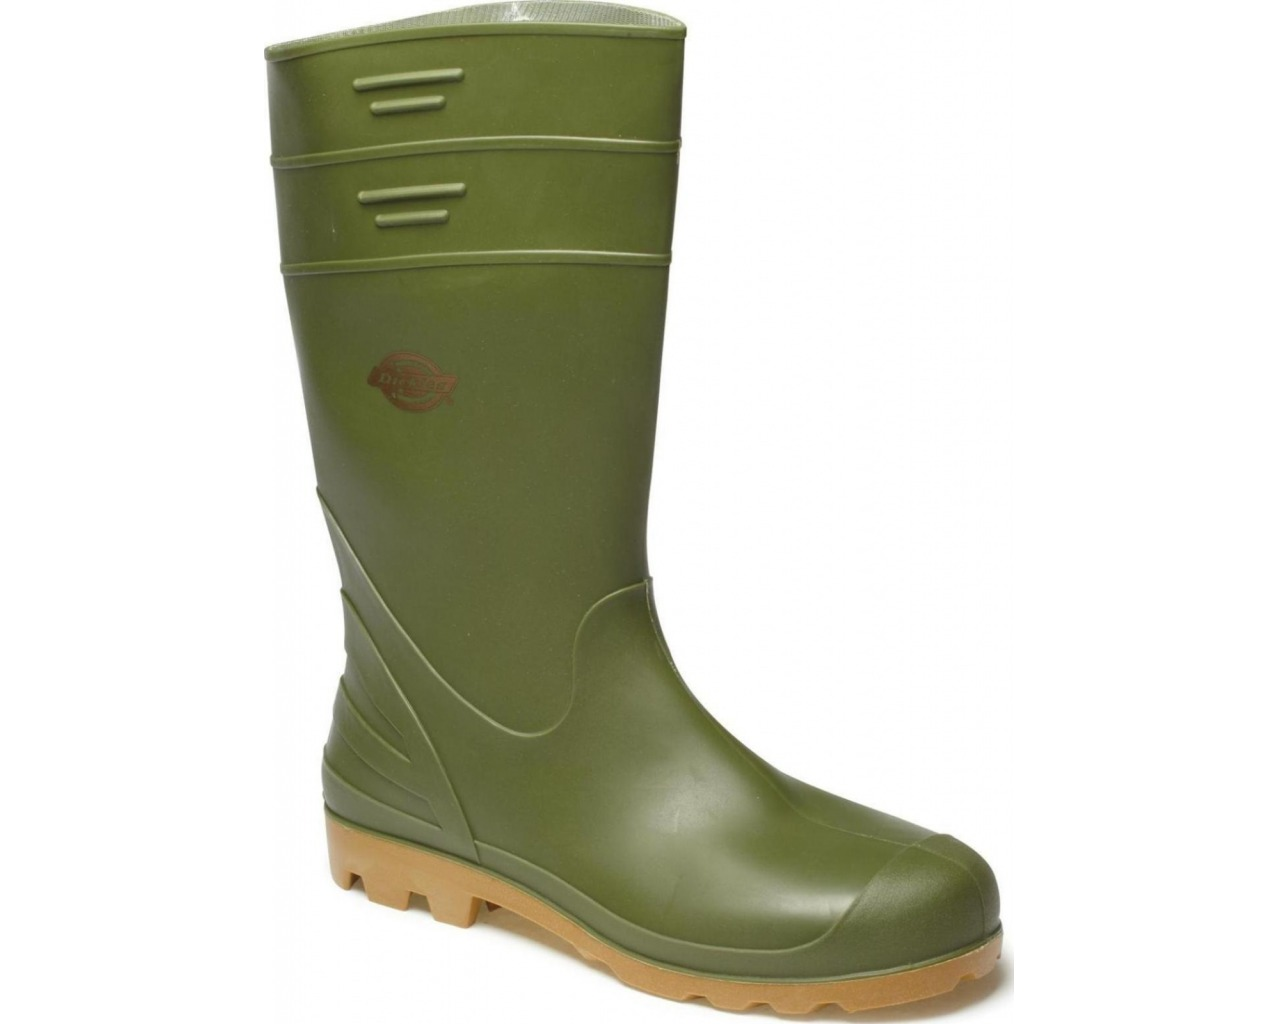 wellington boots dickies pennine wellington boot (sizes 3-12) - green vycnxzq